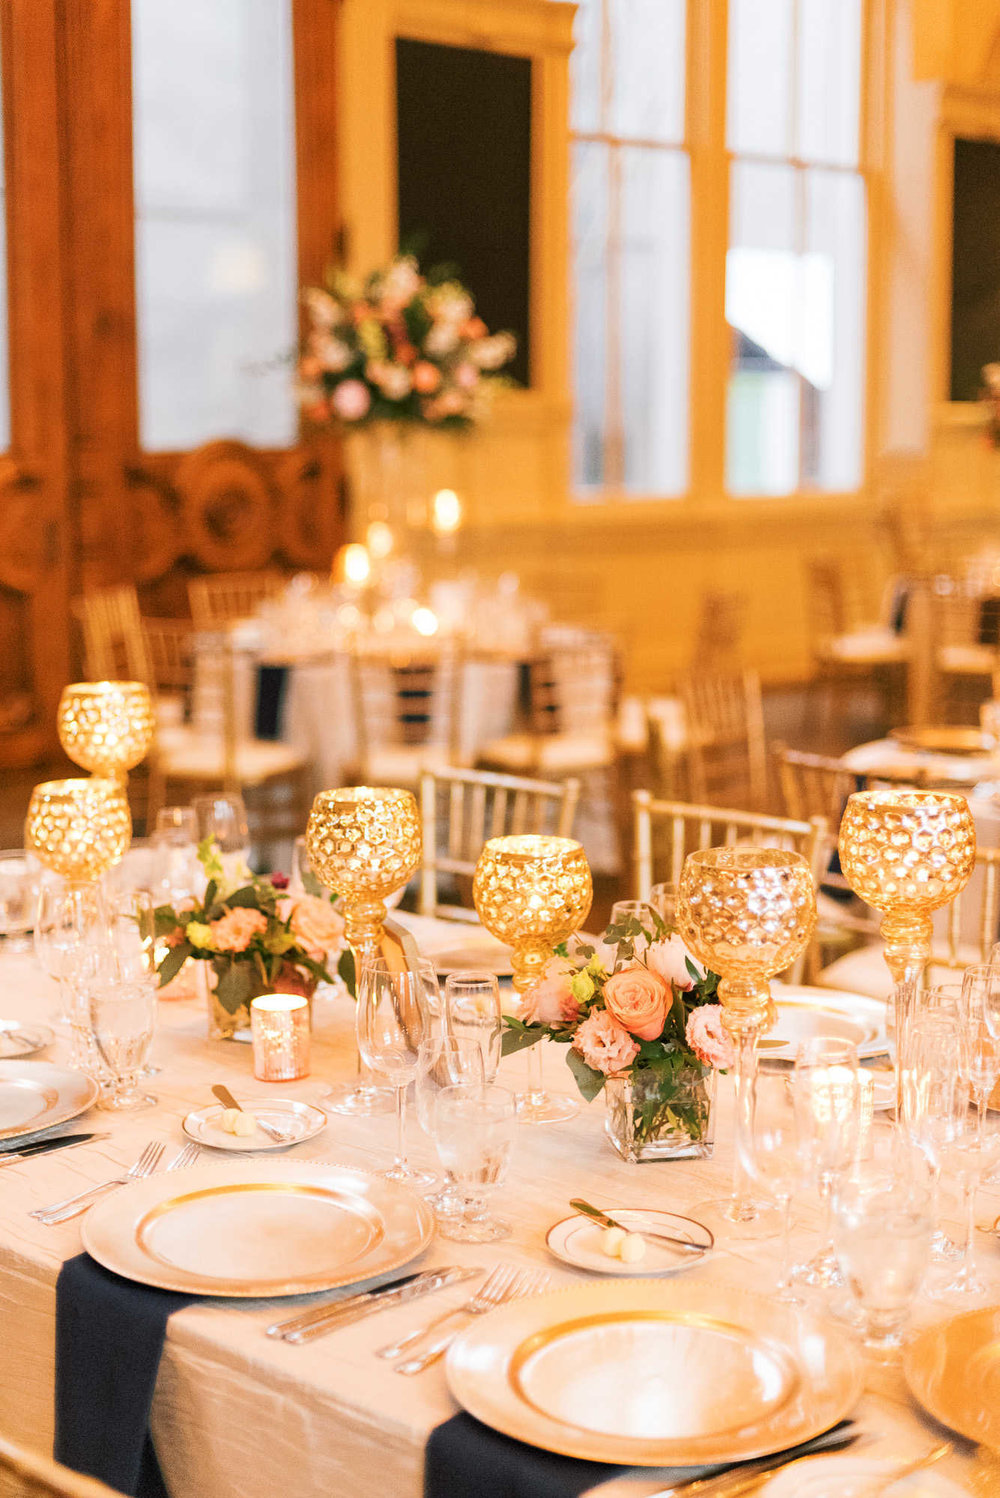 Wedding photography at the Board of Trade